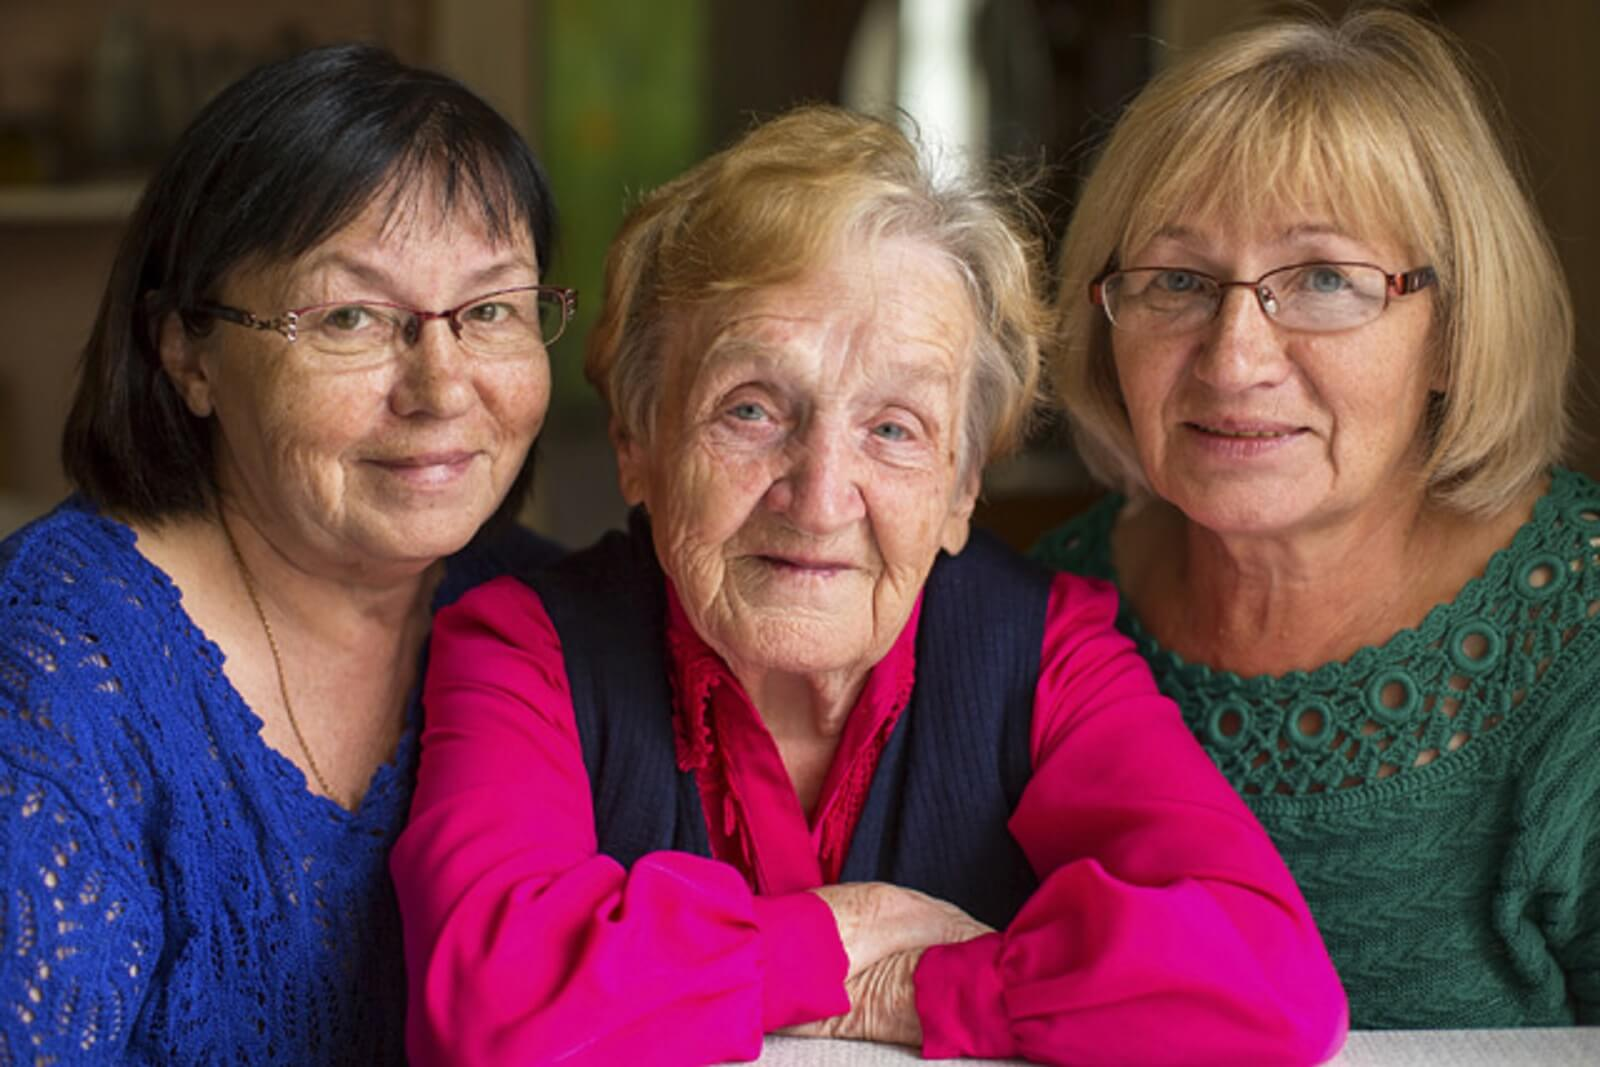 Getting Family to Assist with Aging Parents